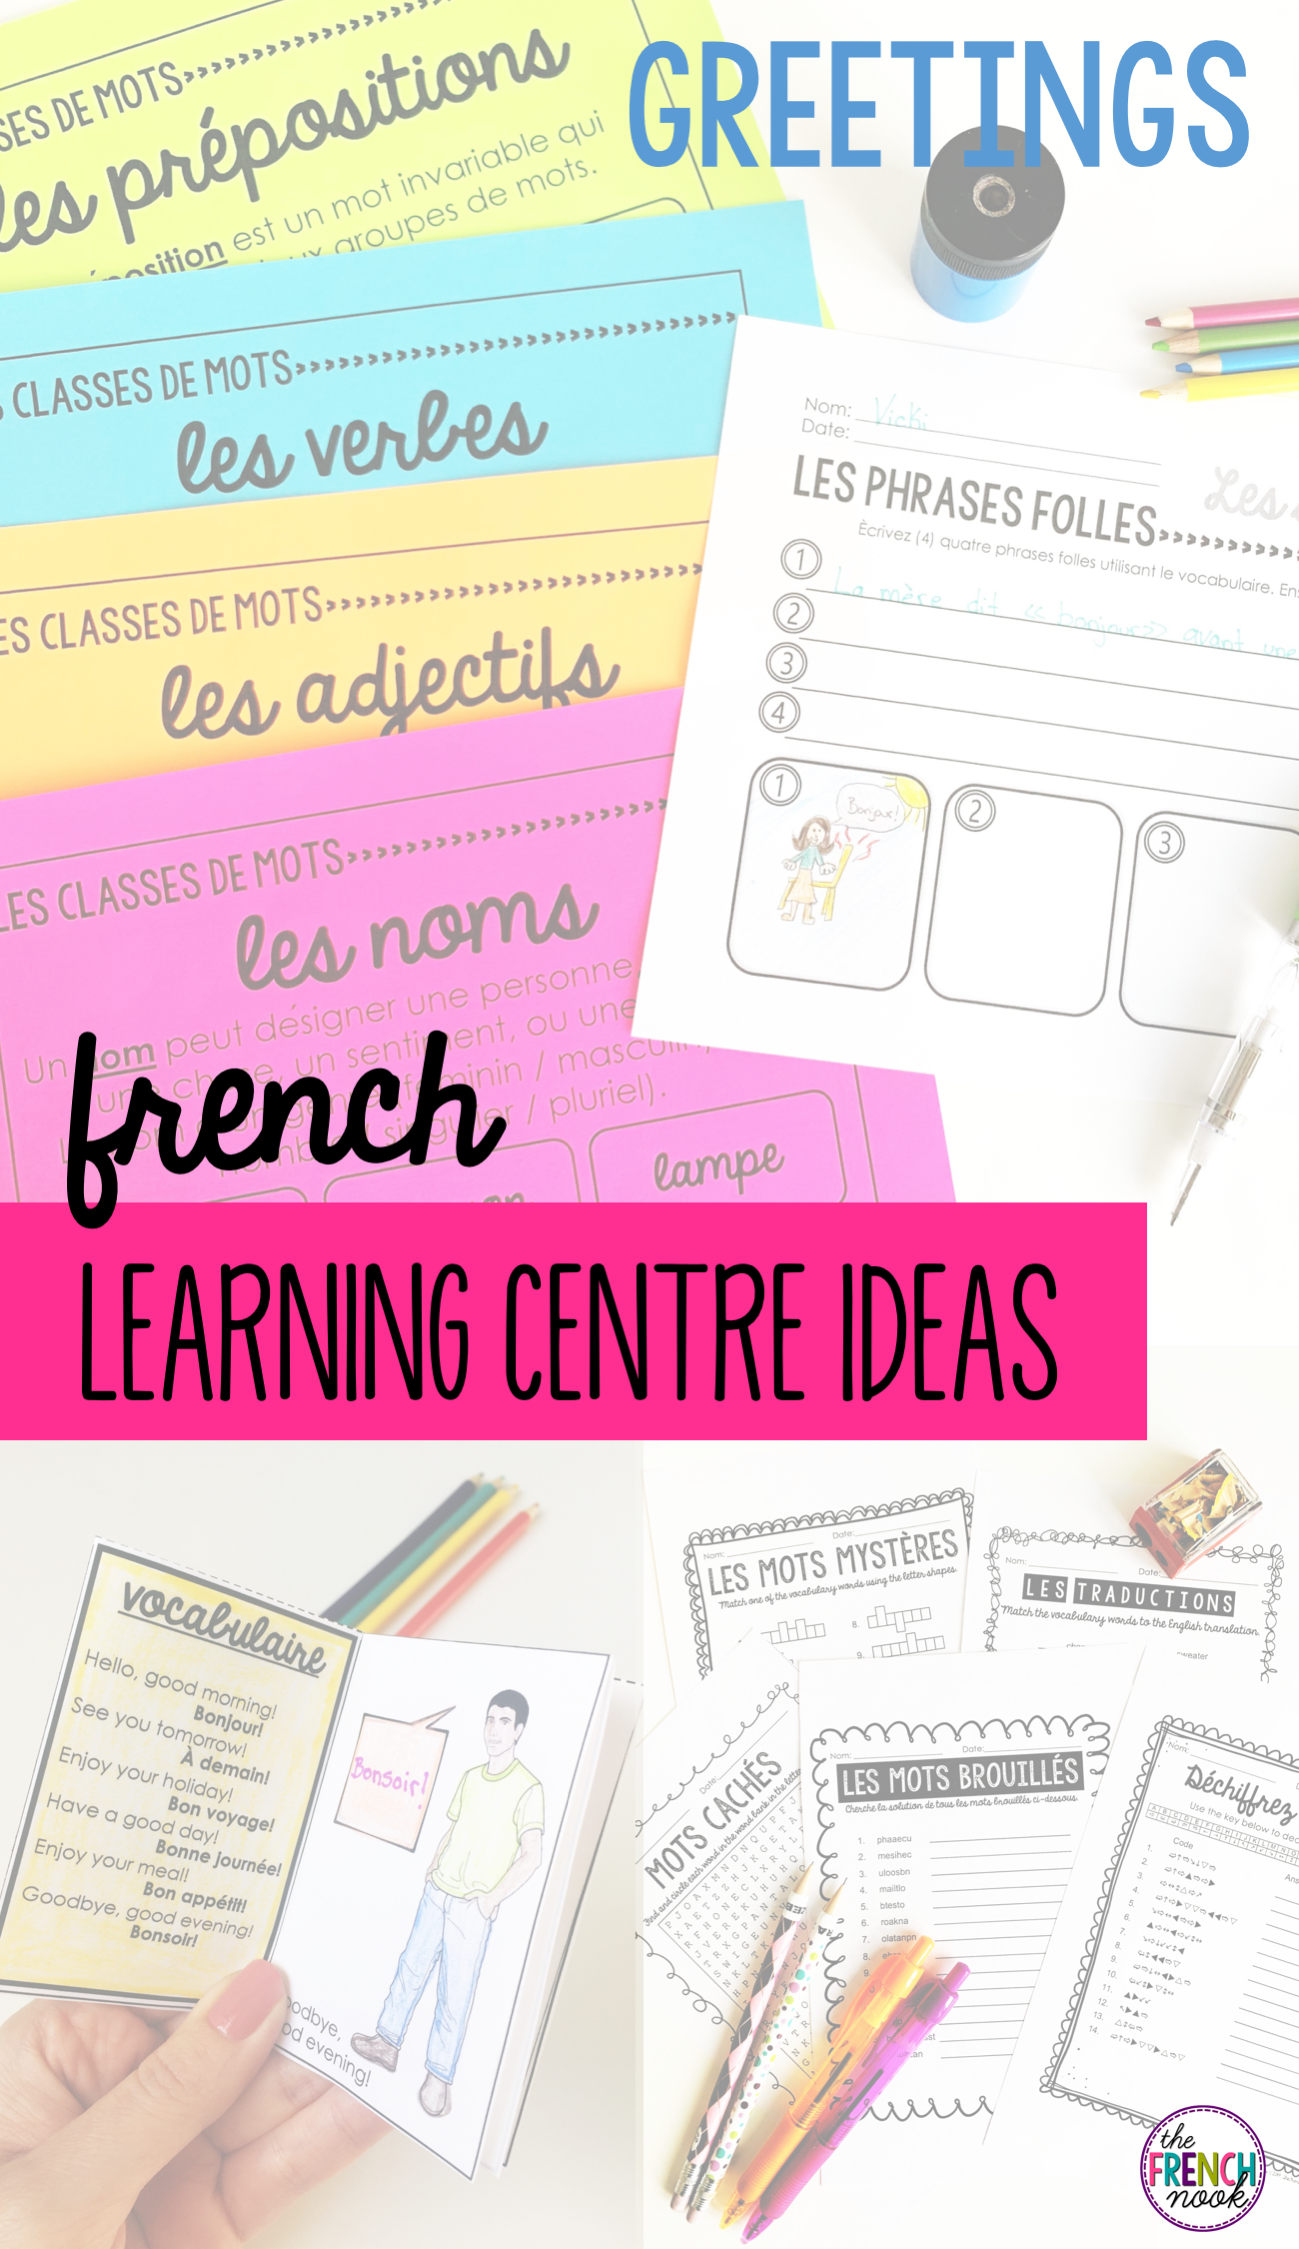 Les Salutations French Greetings Vocabulary Les Phrases